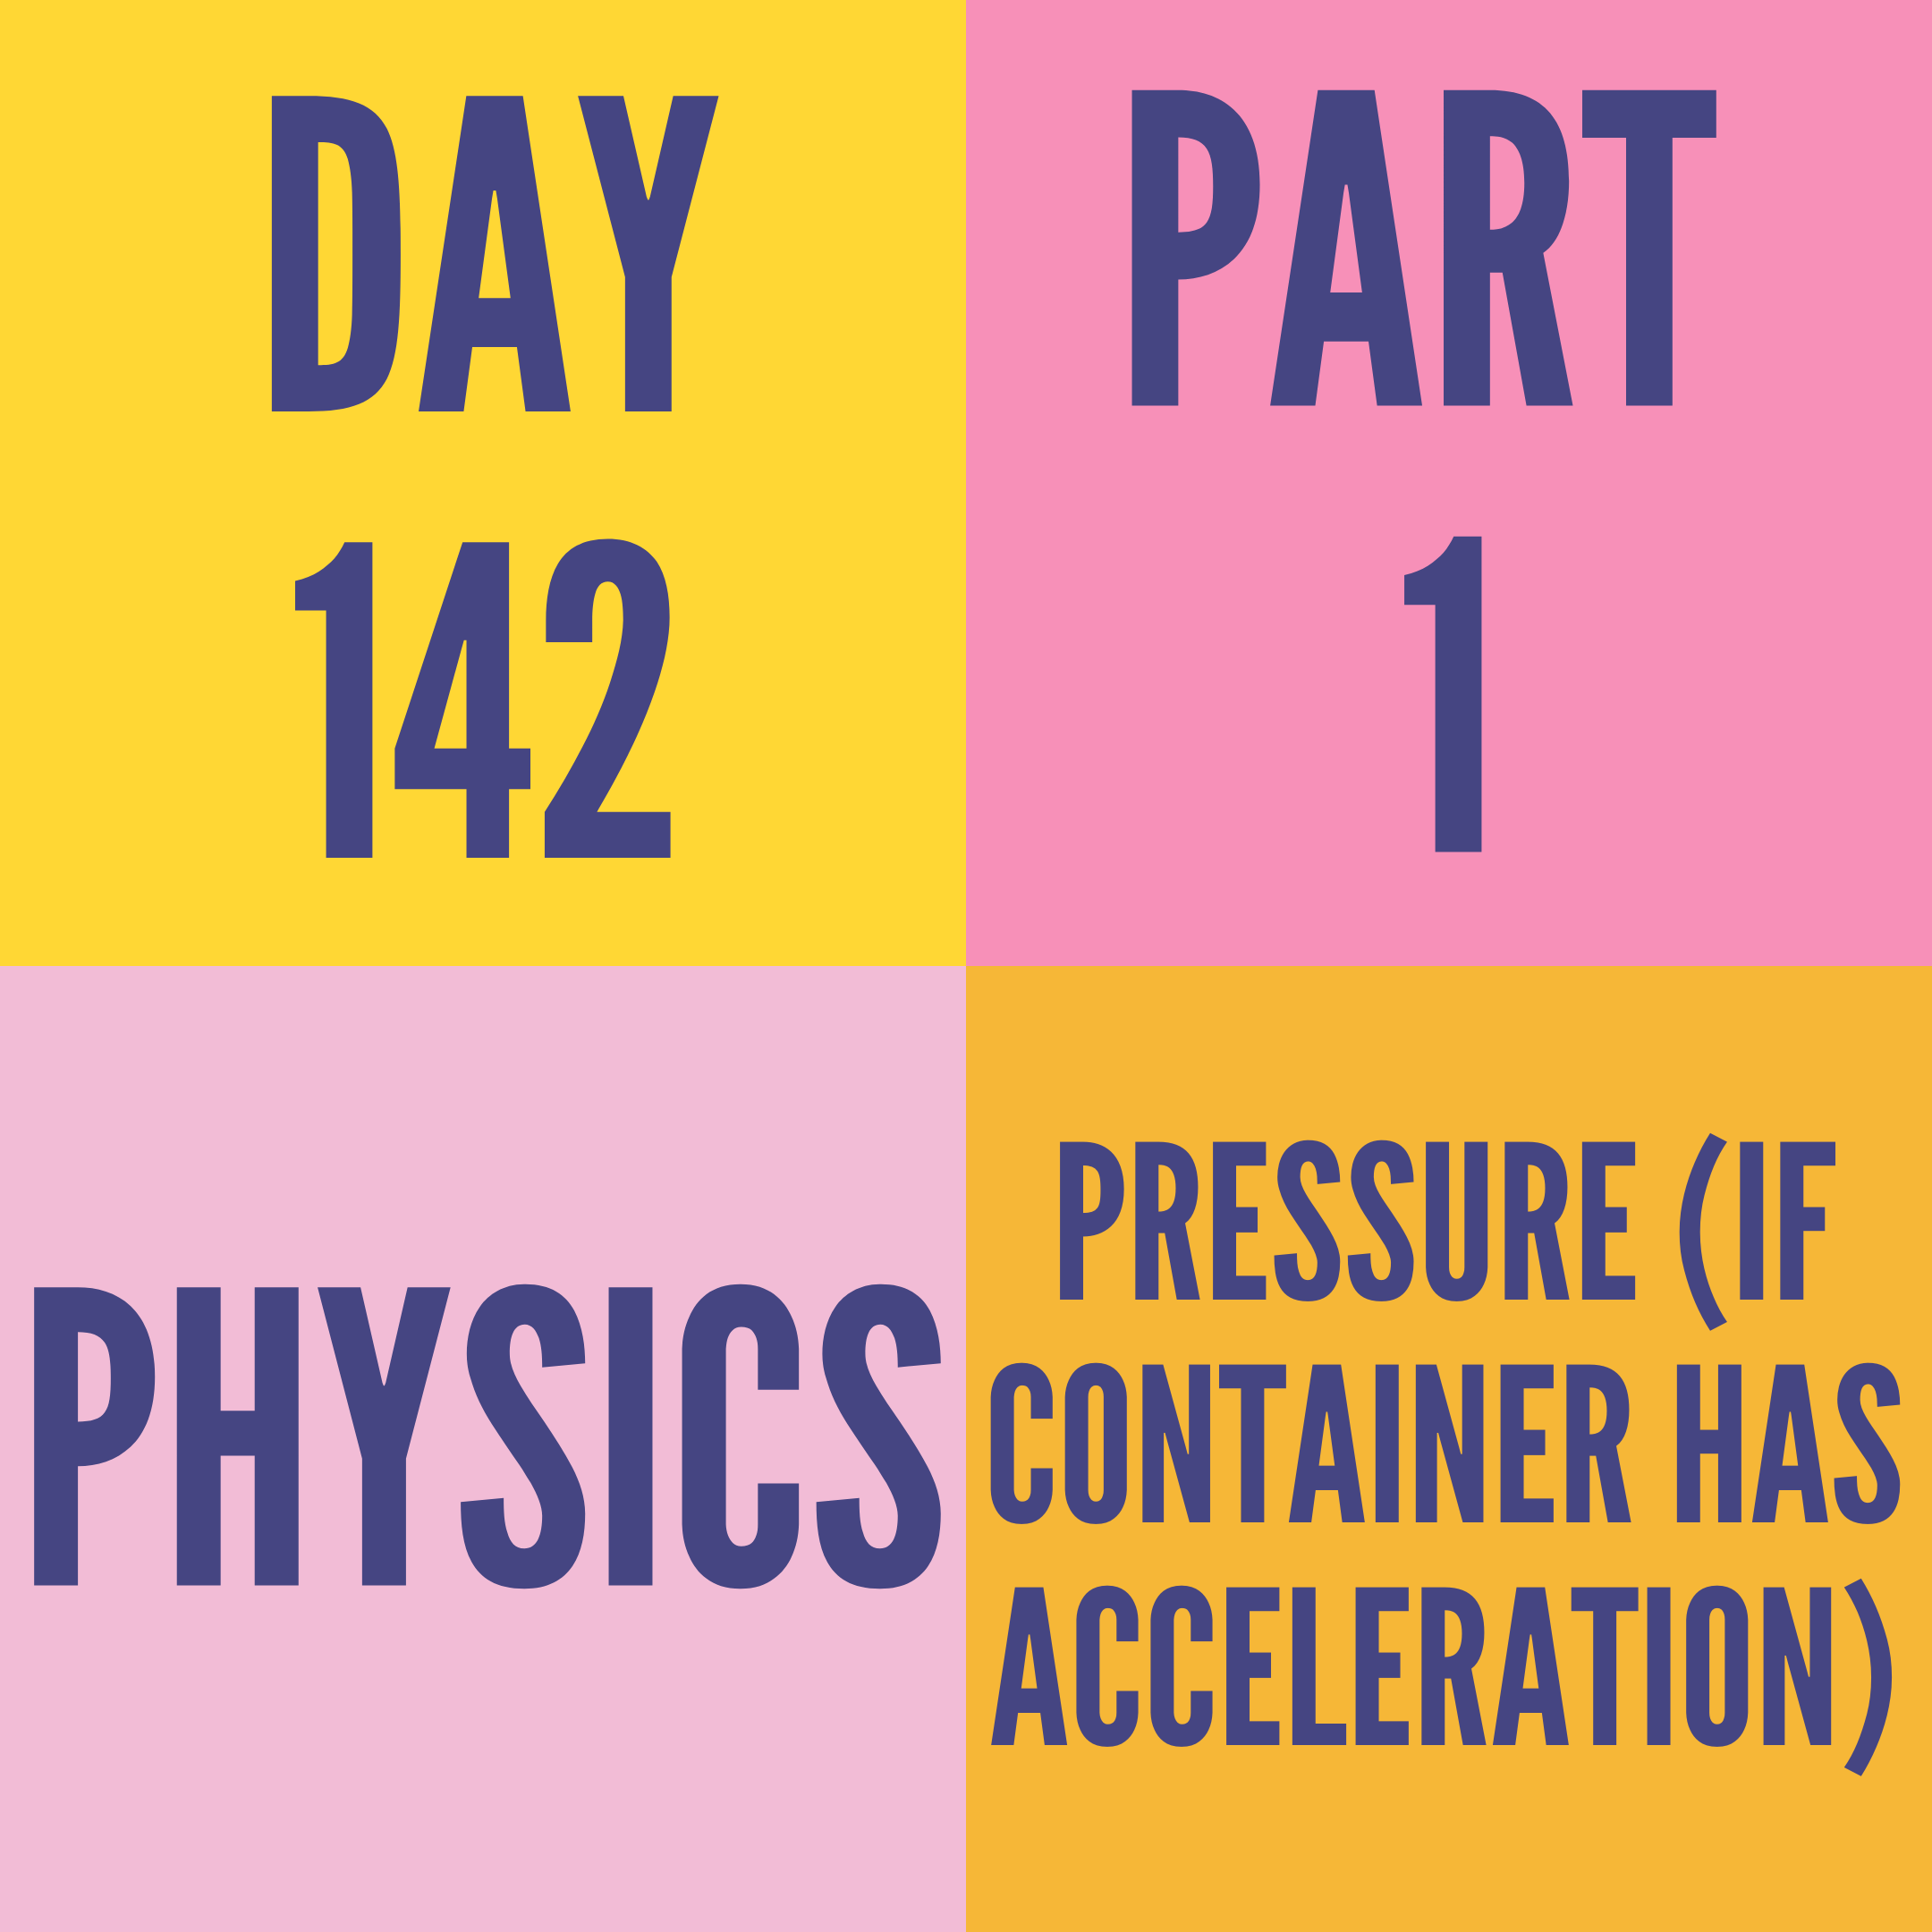 DAY-142 PART-1 PRESSURE (IF CONTAINER HAS ACCELERATION)